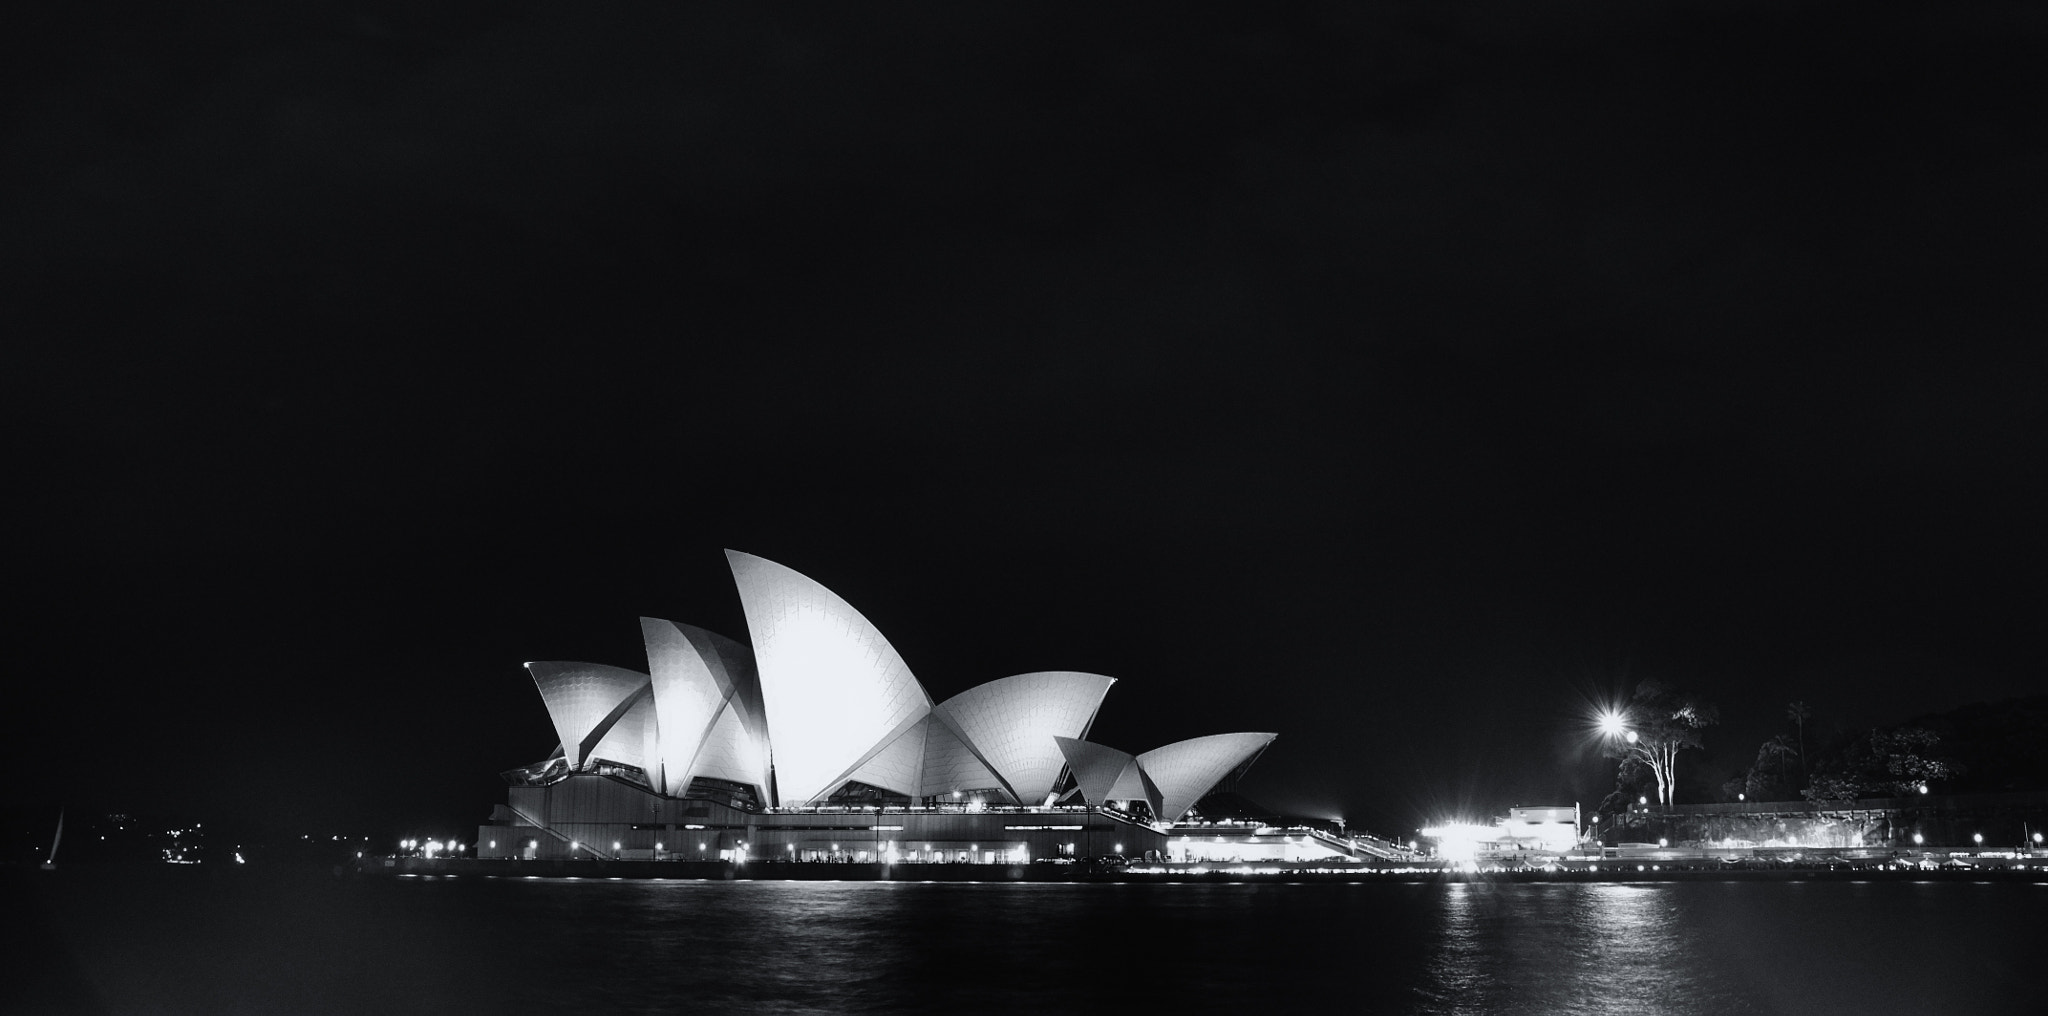 Photograph Sydney Opera House in B/W by Tina De Guzman on 500px